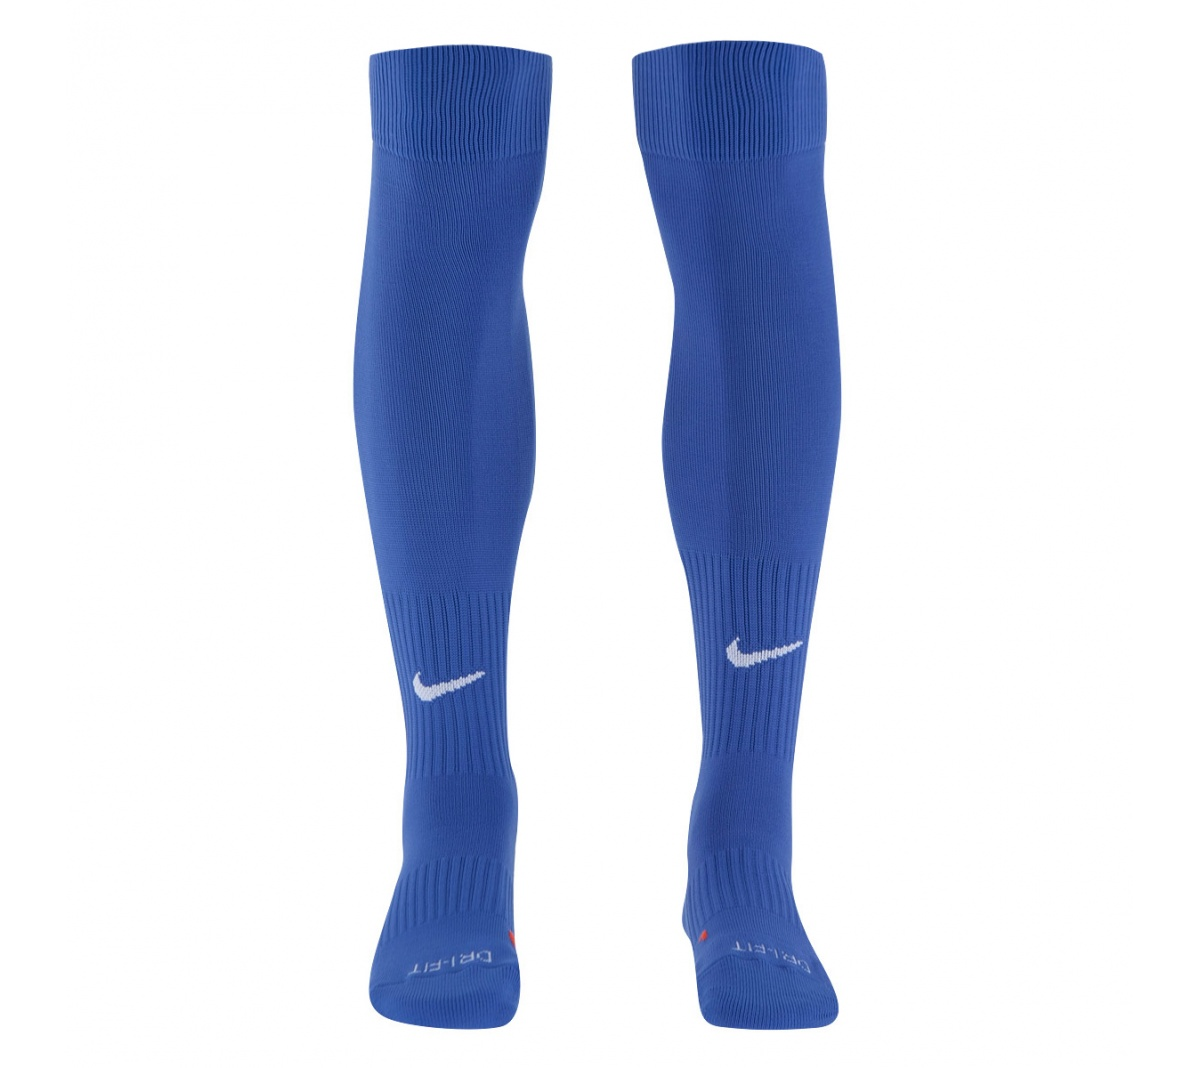 Meião Infantil Nike Classic Football Azul Royal